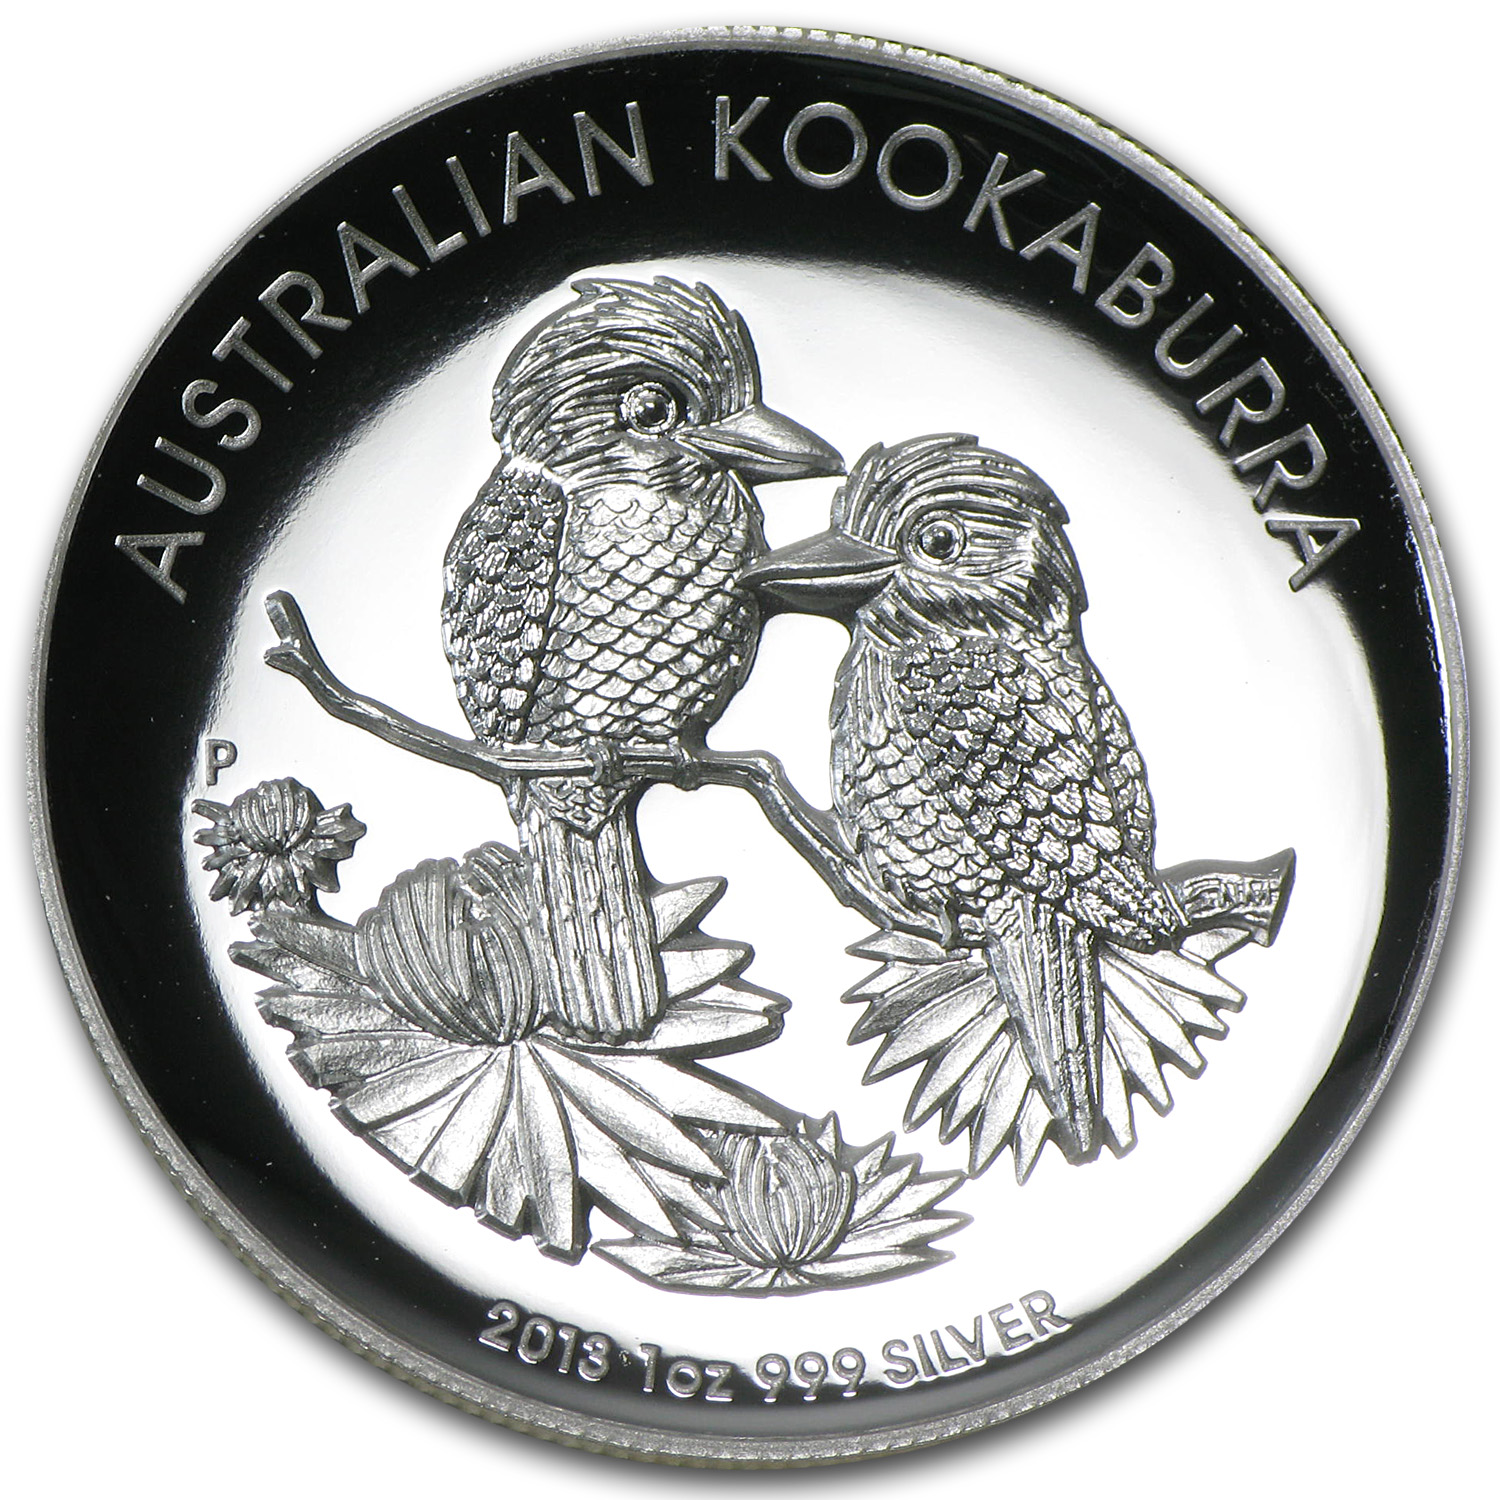 2013 1 oz Silver Australian Kookaburra High Relief Proof